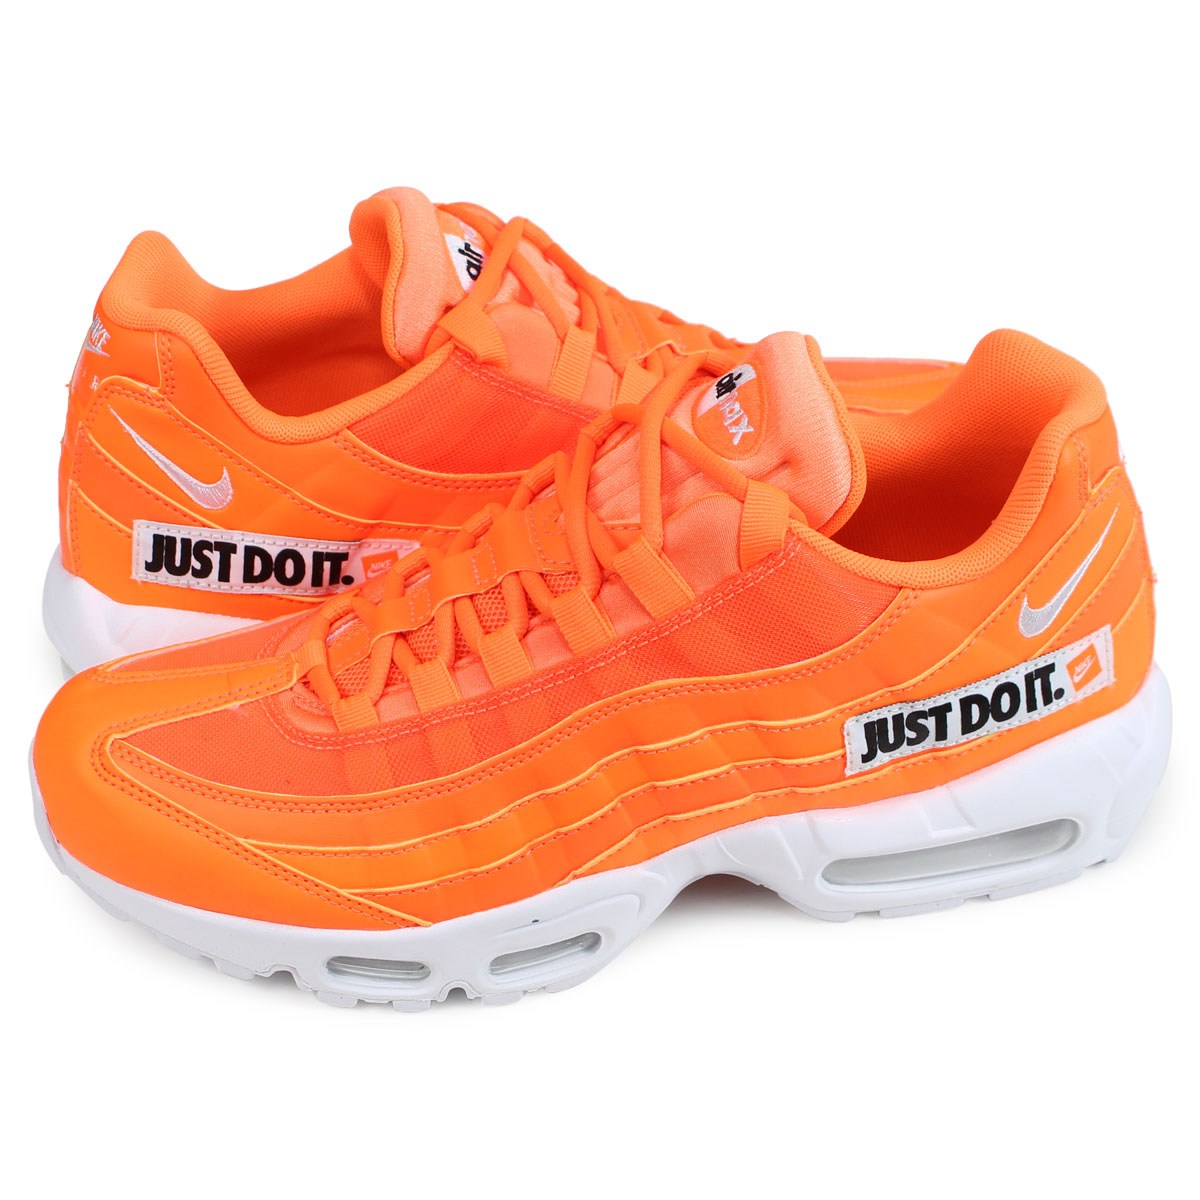 brand new 0b725 b0515 Nike NIKE Air Max 95 sneakers men AIR MAX 95 SE JUST DO IT orange  AV6246-800 [197]